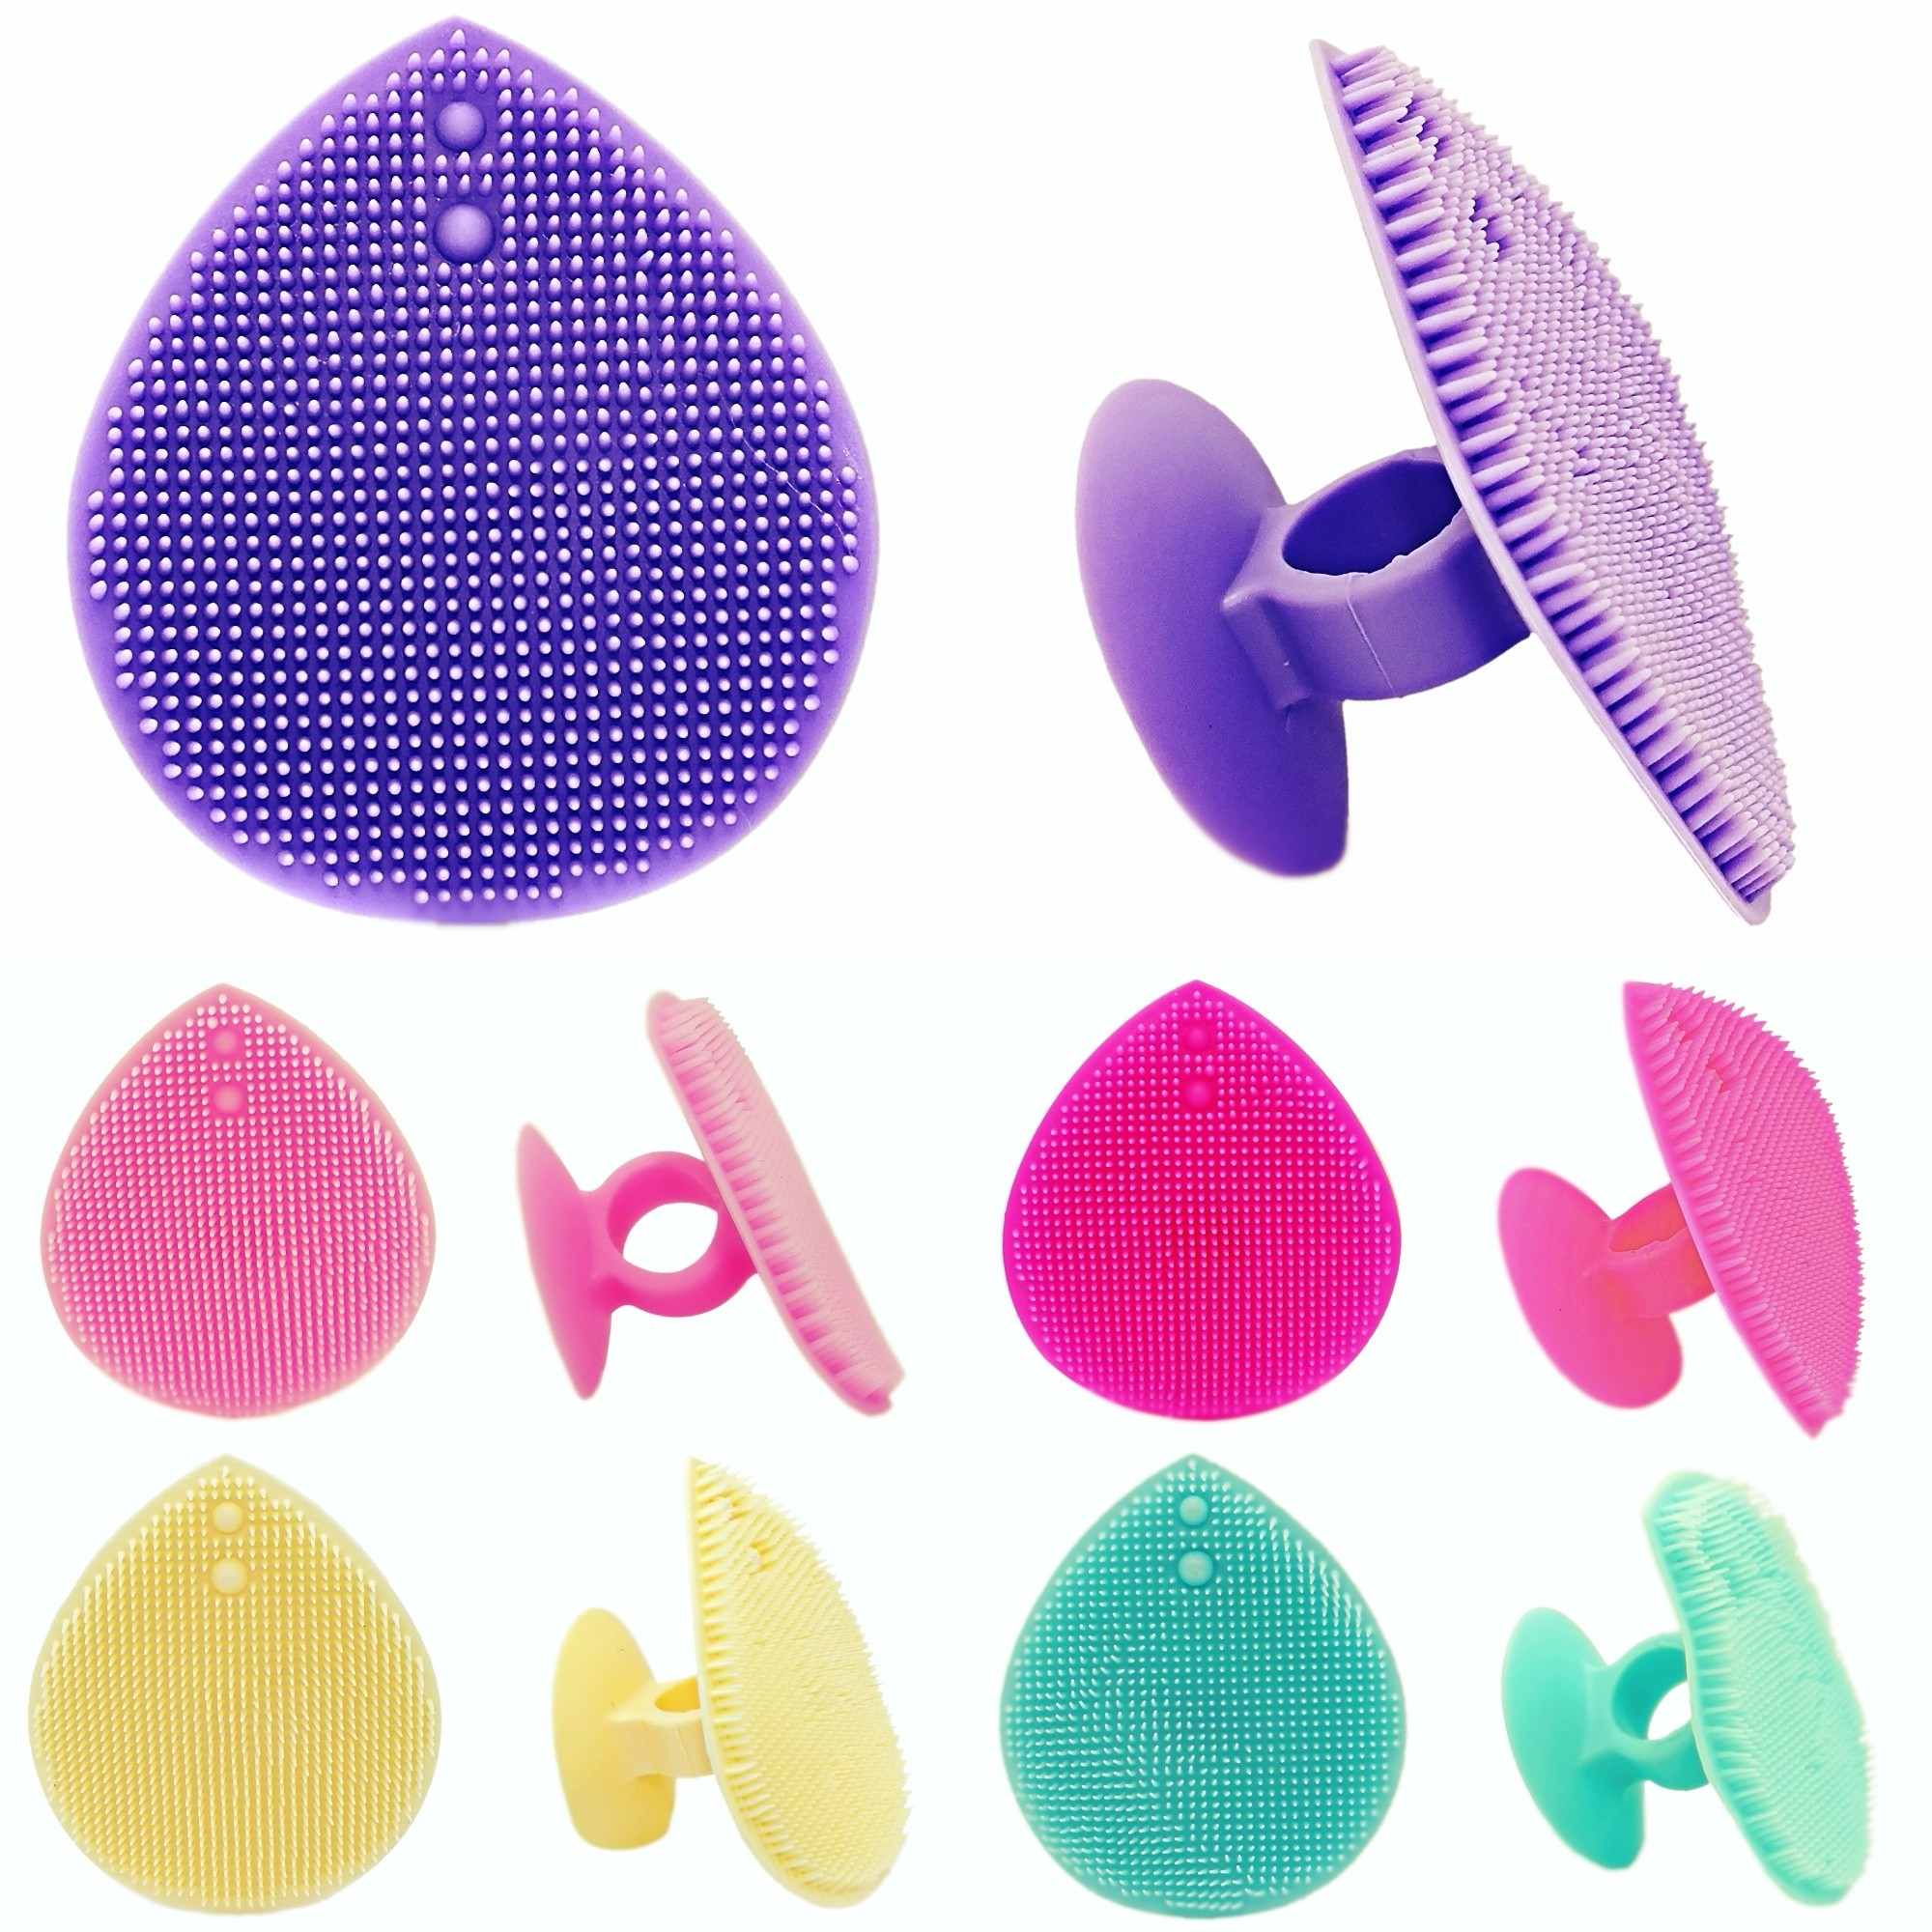 Droplet Silicone Facial Cleansing Pad From Royal Care Cosmetics